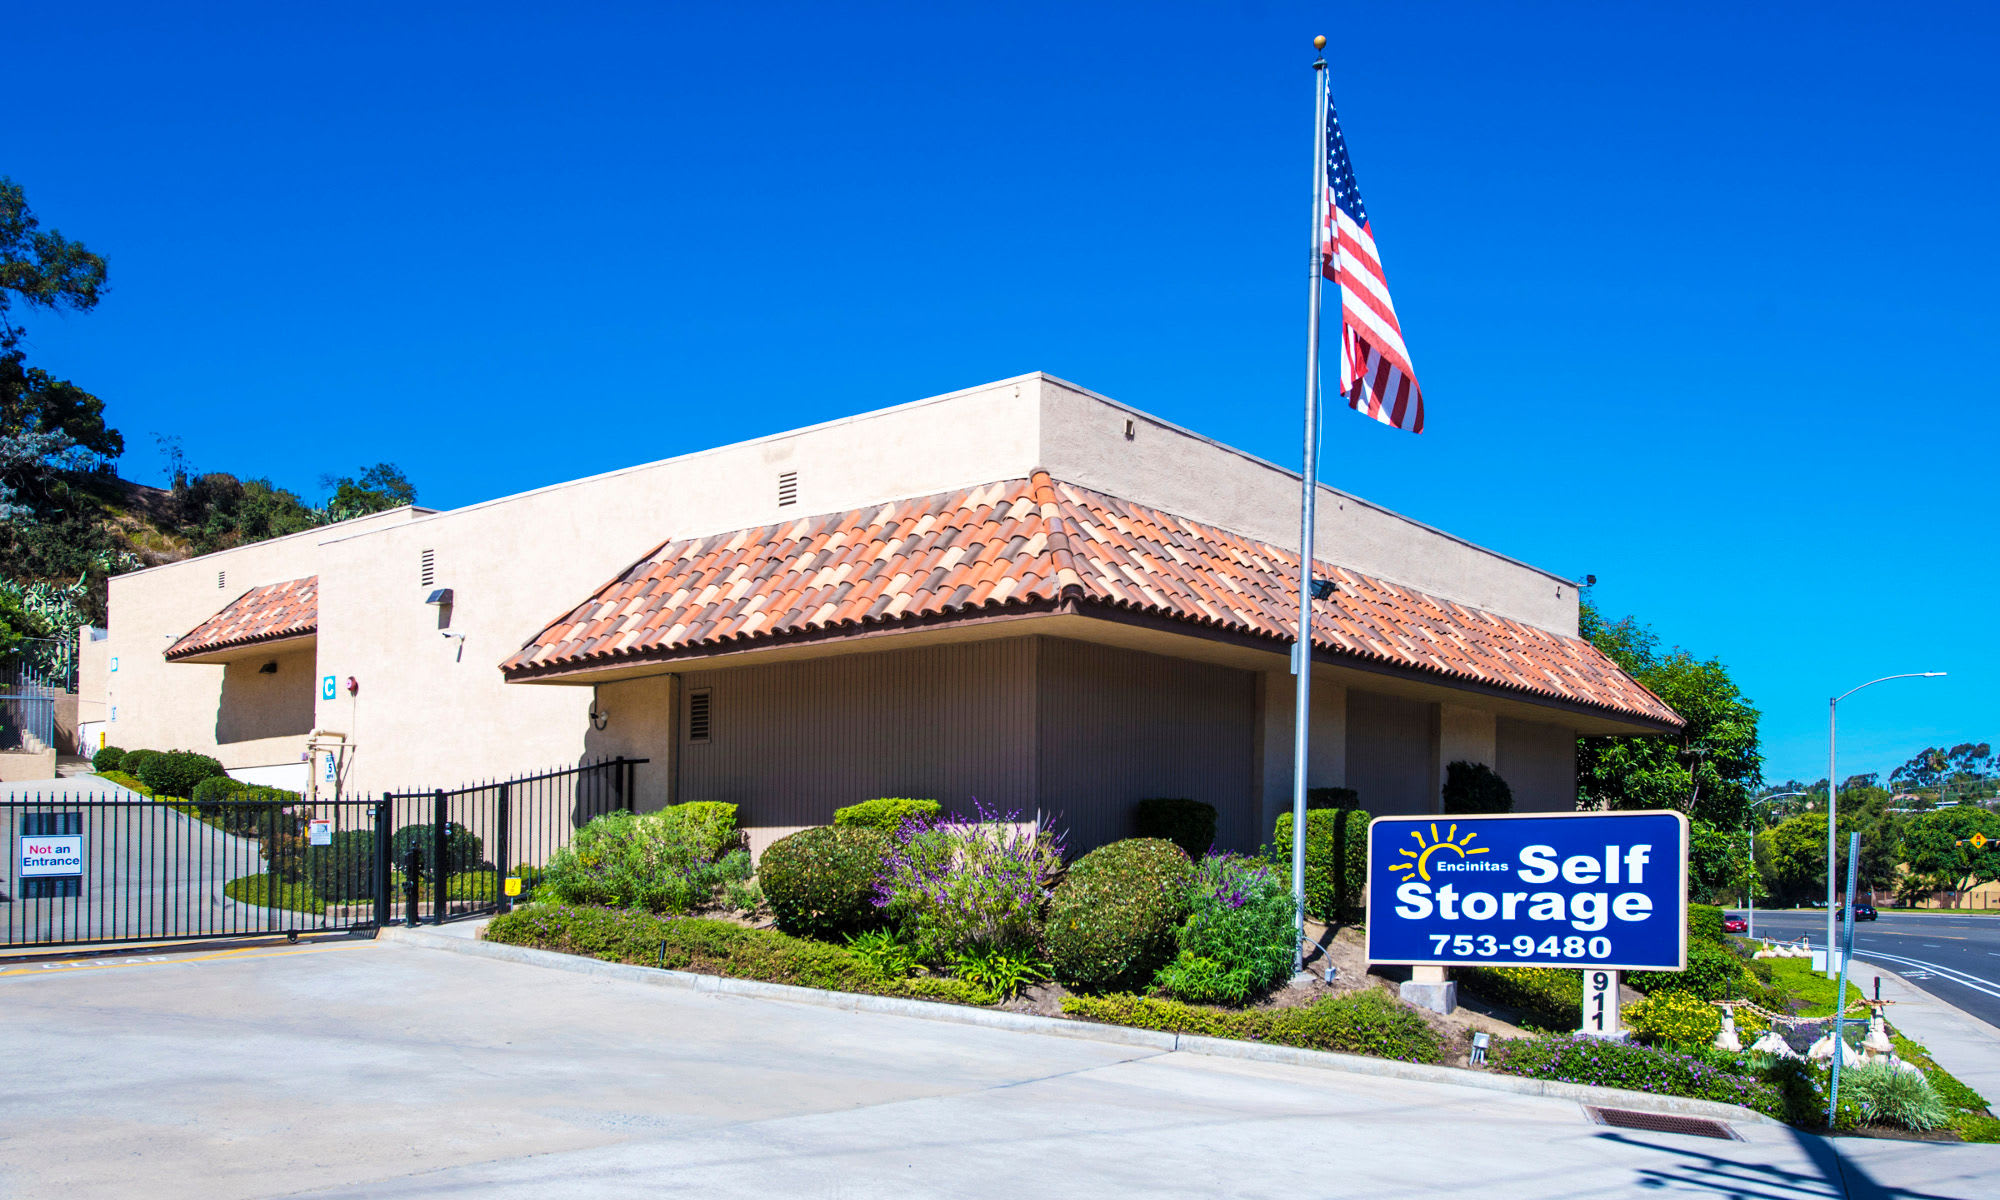 Come see us at Encinitas Self Storage for the best self storage in Encinitas.